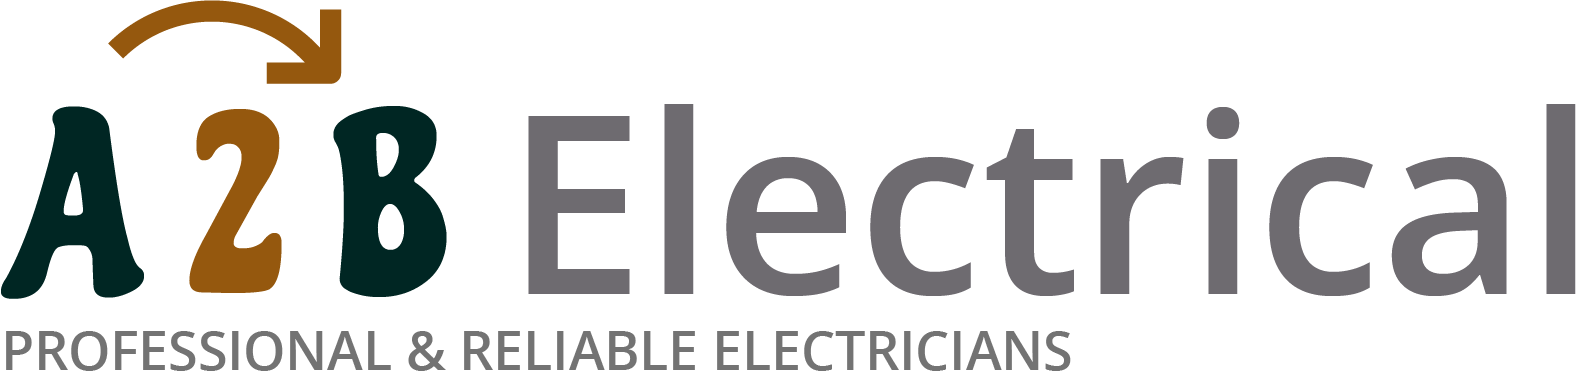 If you have electrical wiring problems in Havering, we can provide an electrician to have a look for you.